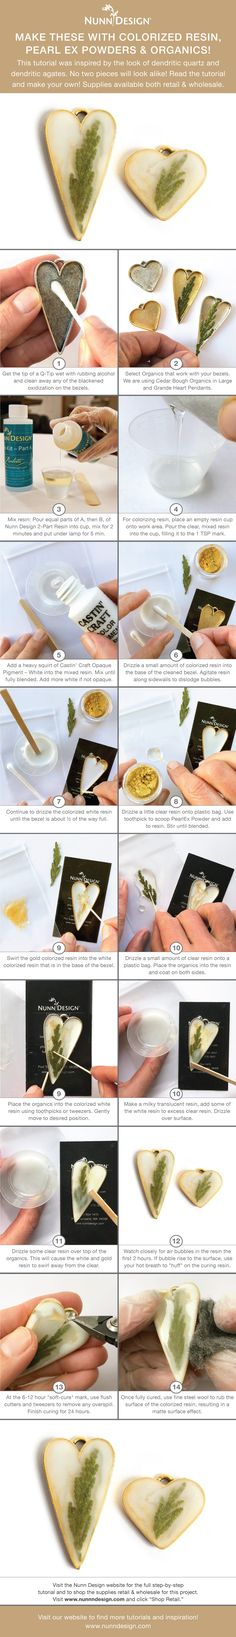 2019 Nunn Design Spring Semester Class Colorized Resin with PearlEx Powders and Organics No two p Resin Spray, Ice Resin, Clear Resin, Resin Jewelry Tutorial, Resin Tutorial, Resin Crafts, Resin Art, Jewelry Crafts, Pearl Ex